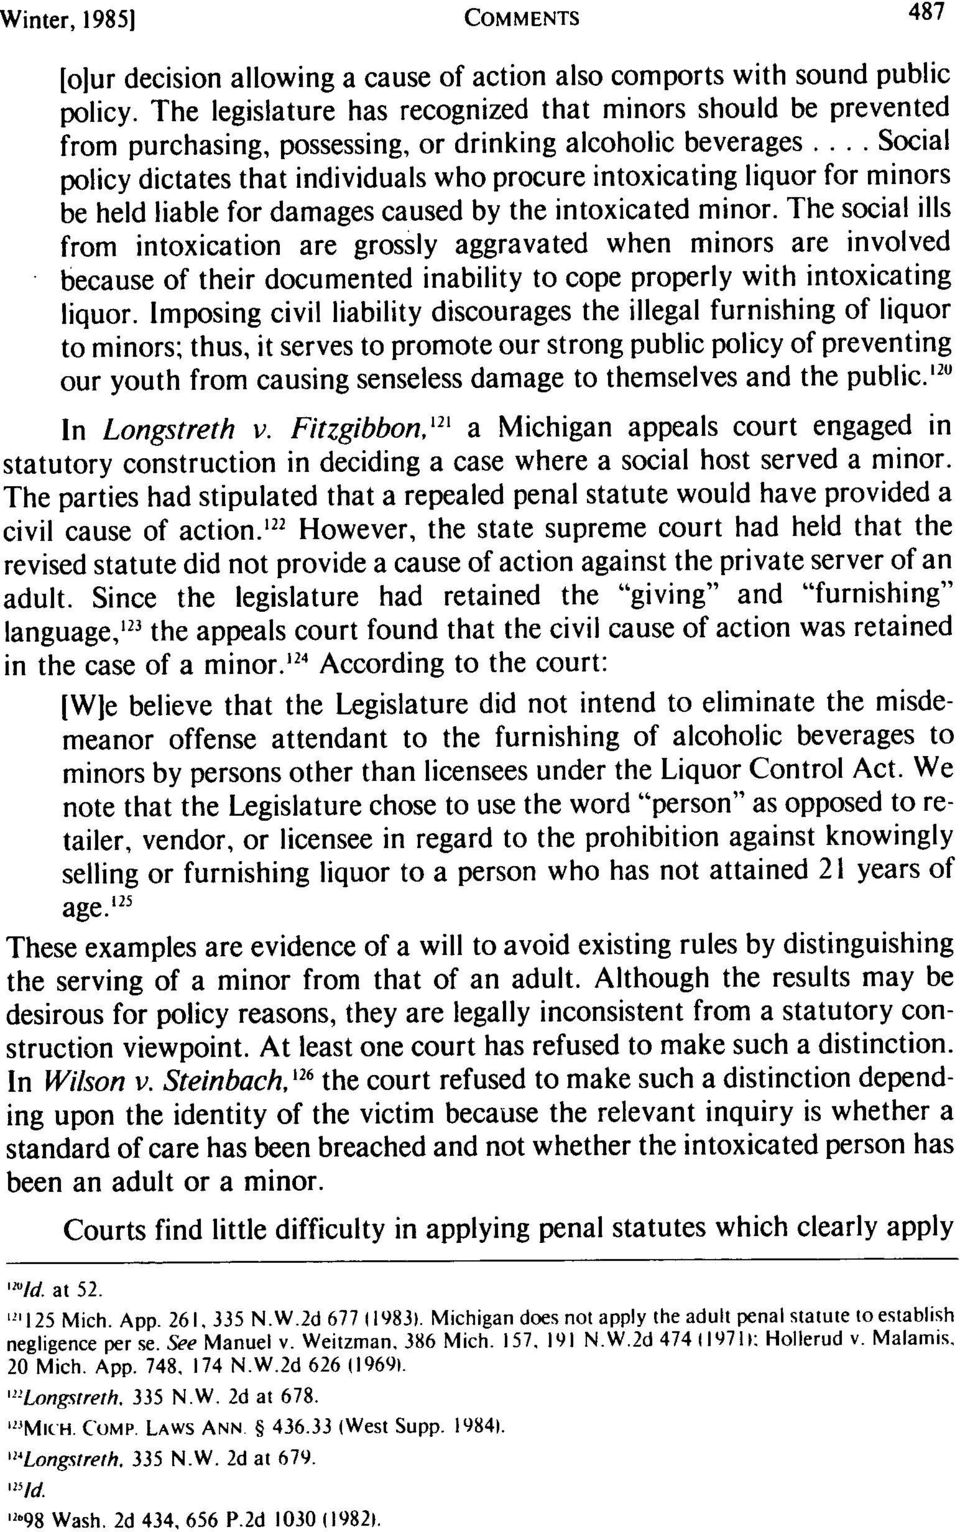 .. Social policy dictates that individuals who procure intoxicating liquor for minors be held liable for damages caused by the intoxicated minor.